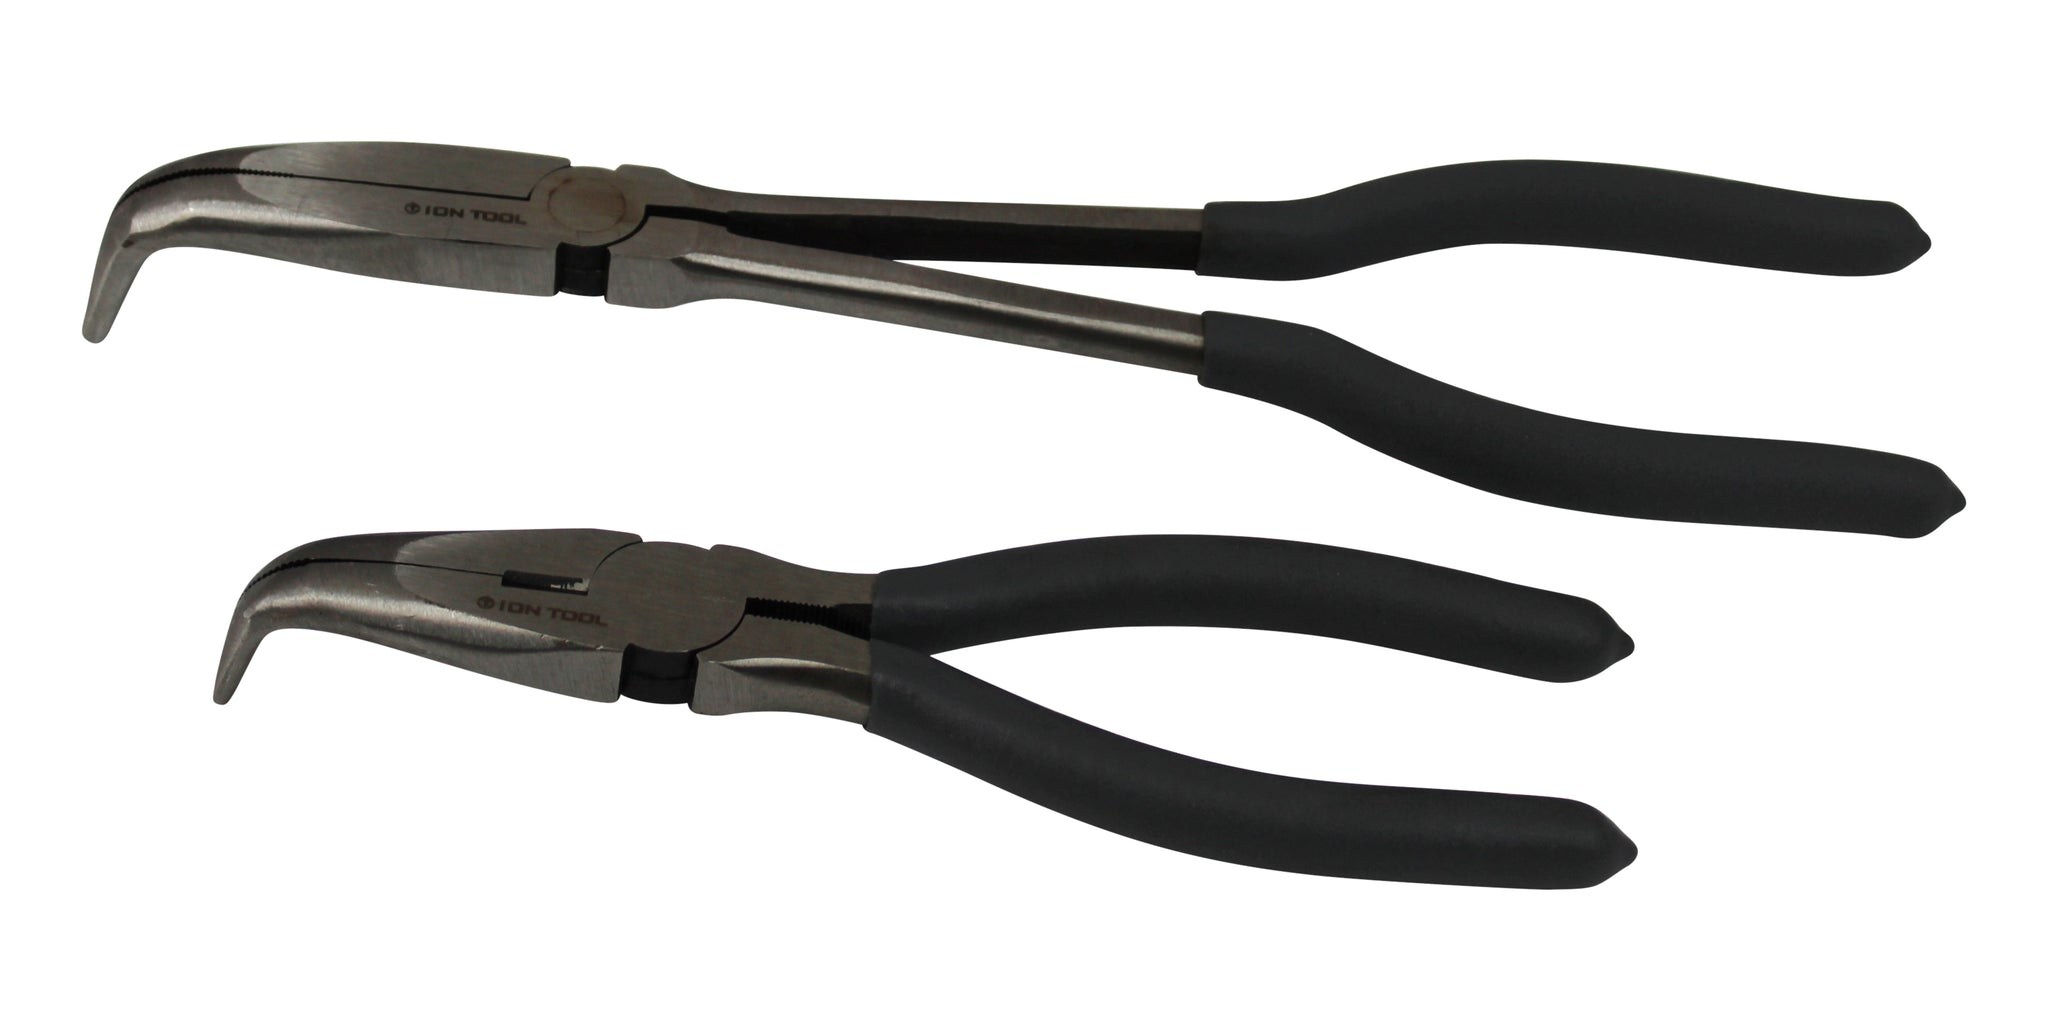 "Angled Long Needle Nose Pliers Set – 11"" & 7"" 90 Degree Bent Nose Pliers, 2 Piece Set"